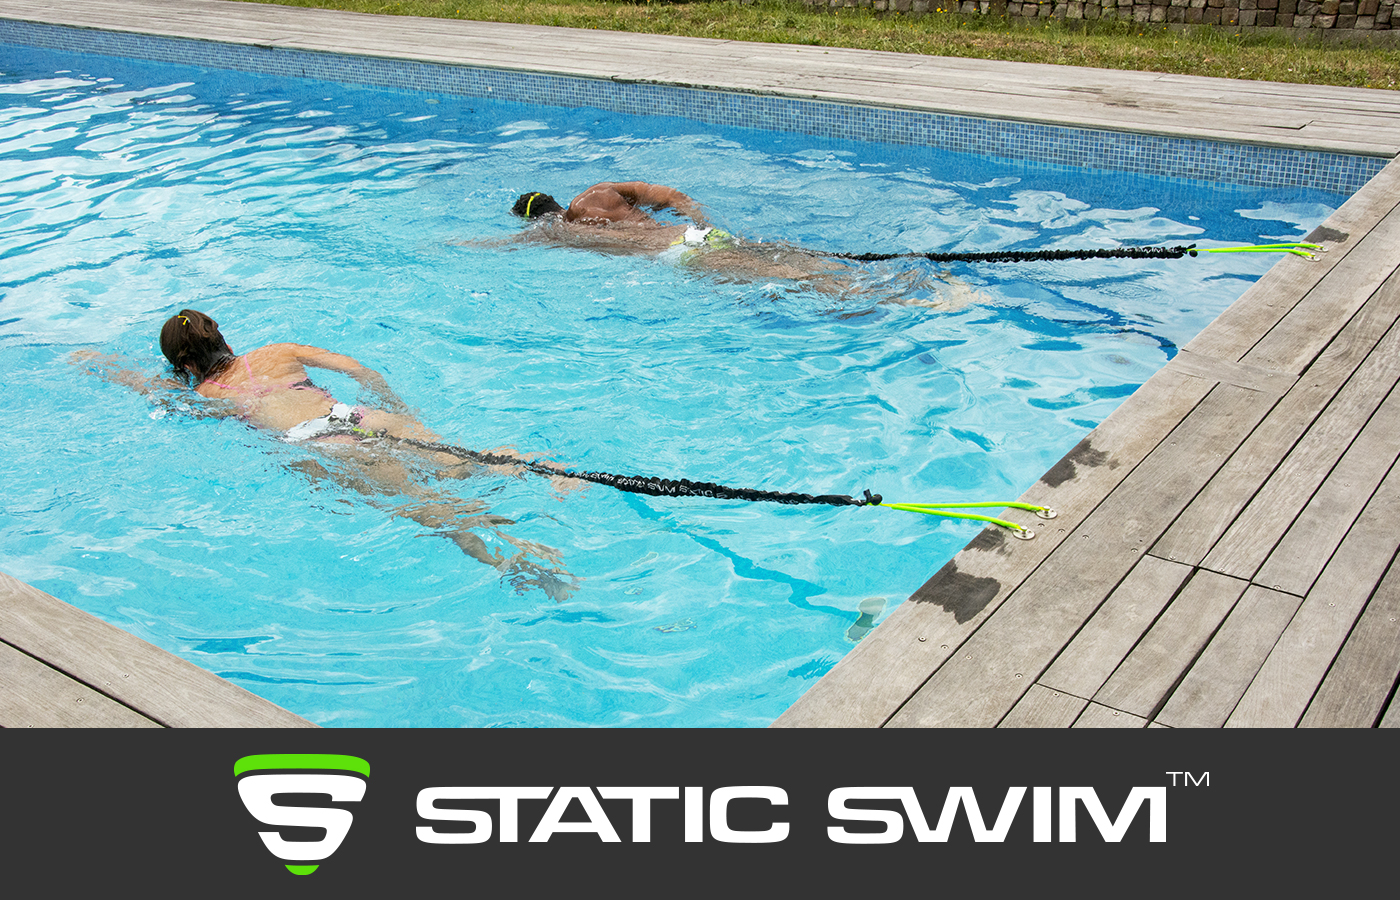 STATIC SWIM™ crawl